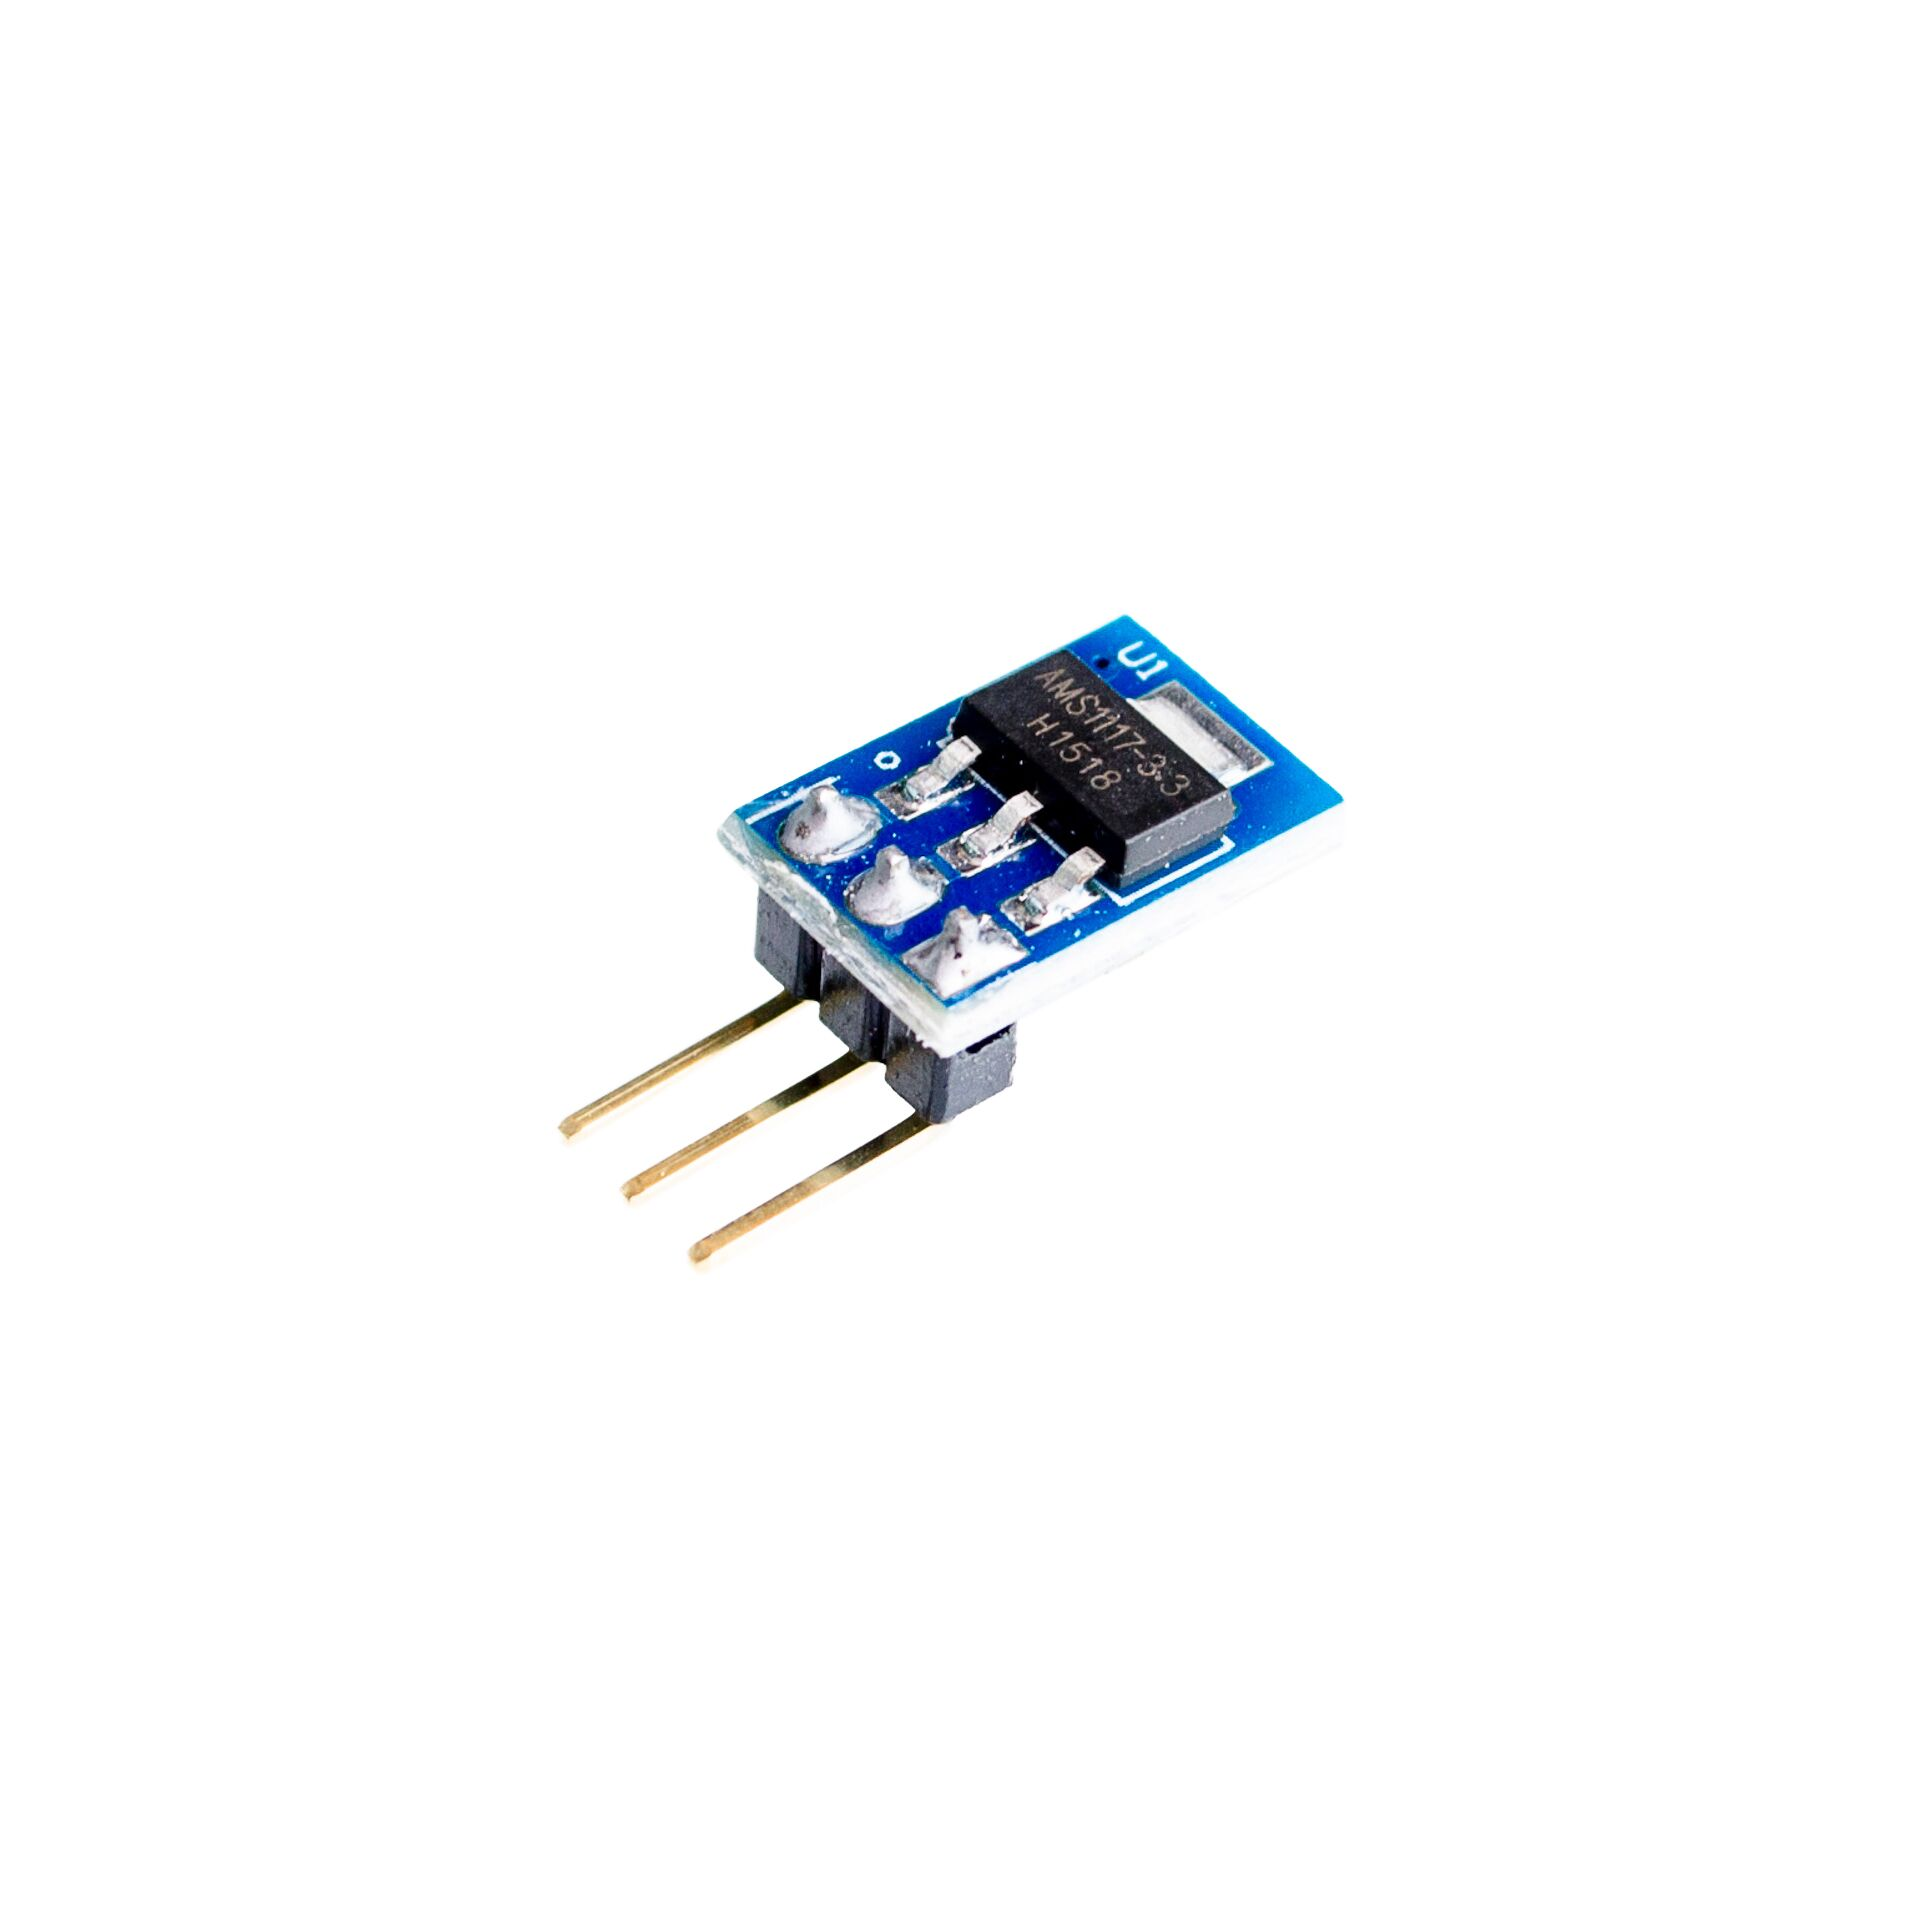 10pcs Lot Electronics Ics Chips Lm358n Lm358 358 Linear Lm358p Sop8 Integrated Circuits Dual Operational Amplifiers Dc 5v To 33v Step Down Power Supply Module Ams1117 33 Ldo 800ma